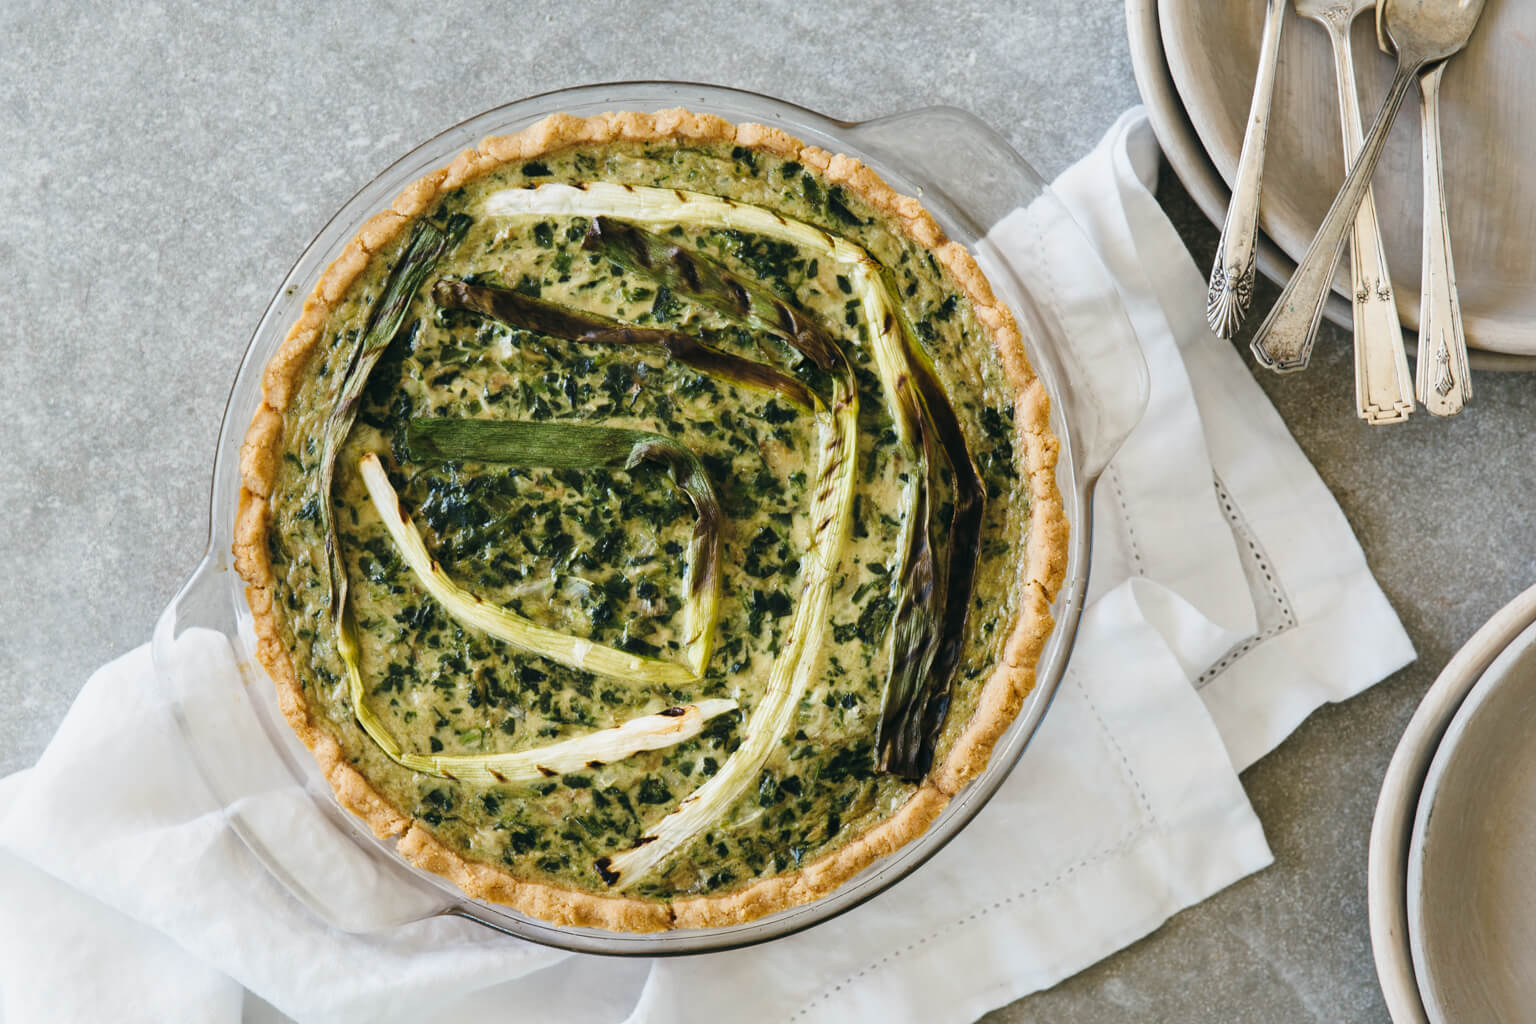 Spinach artichoke quiche with grilled spring onions. Gluten-free, grain-free, dairy-free and paleo-friendly. The perfect healthy breakfast!